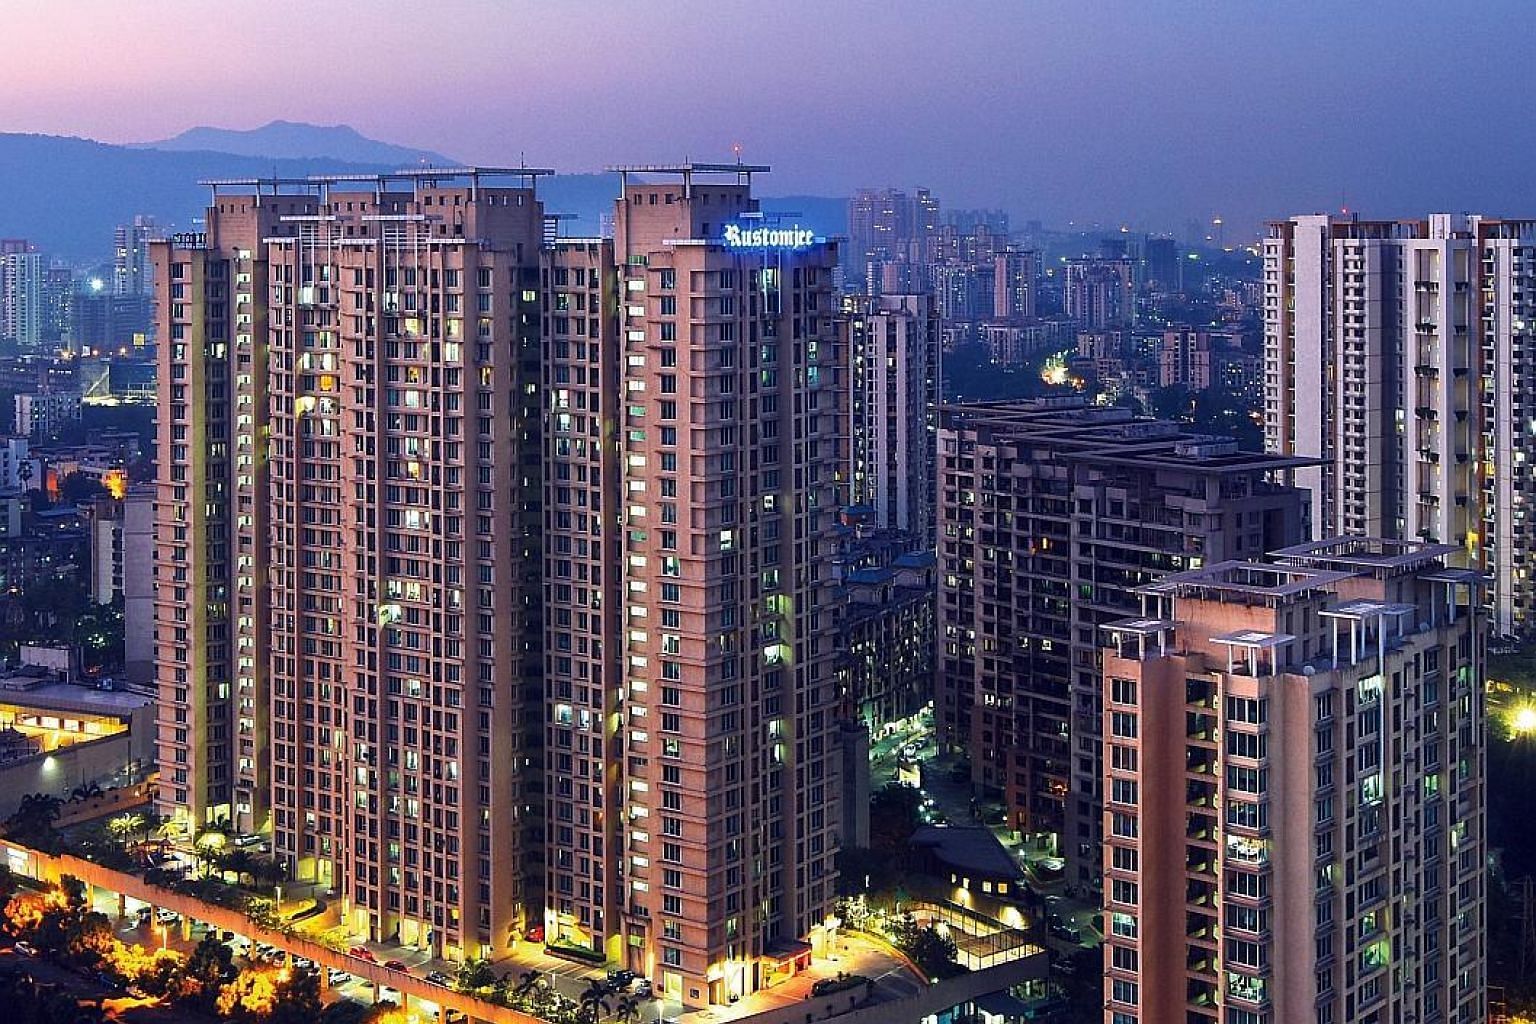 Upon completion of the acquisition, Keppel Land and Rustomjee Group will jointly develop 7,400 homes and retail units with a total gross floor area of approximately five million sq ft.